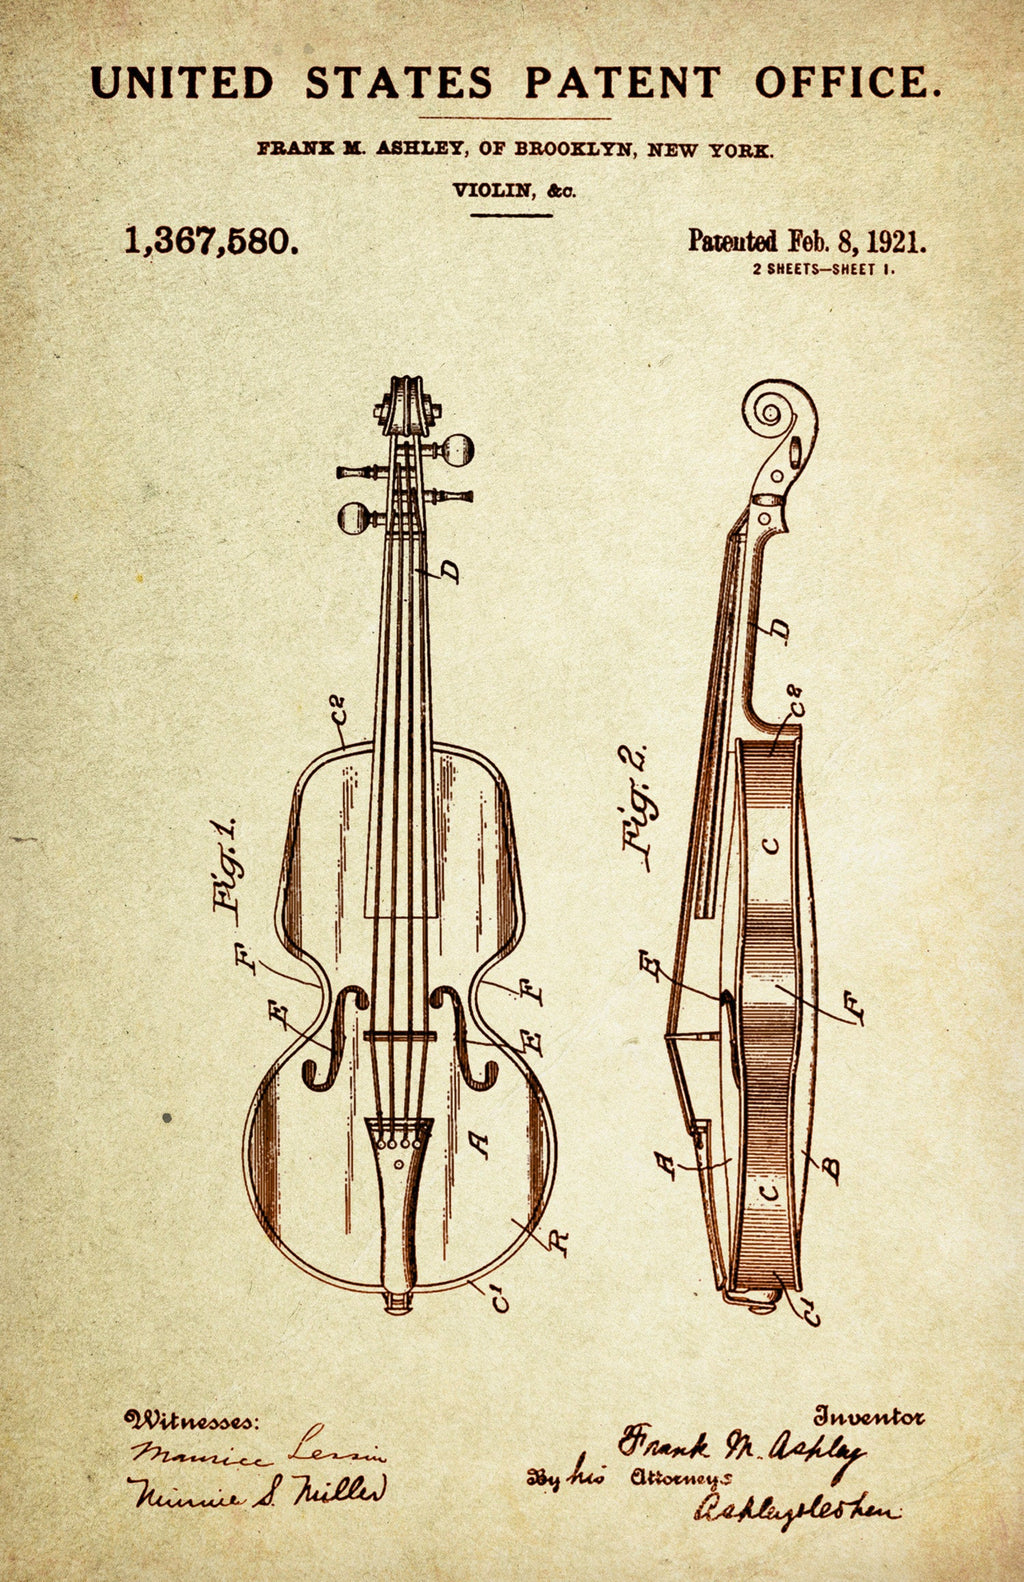 Violin Patent Poster Wall Decor (1921 by Frank M. Ashley)